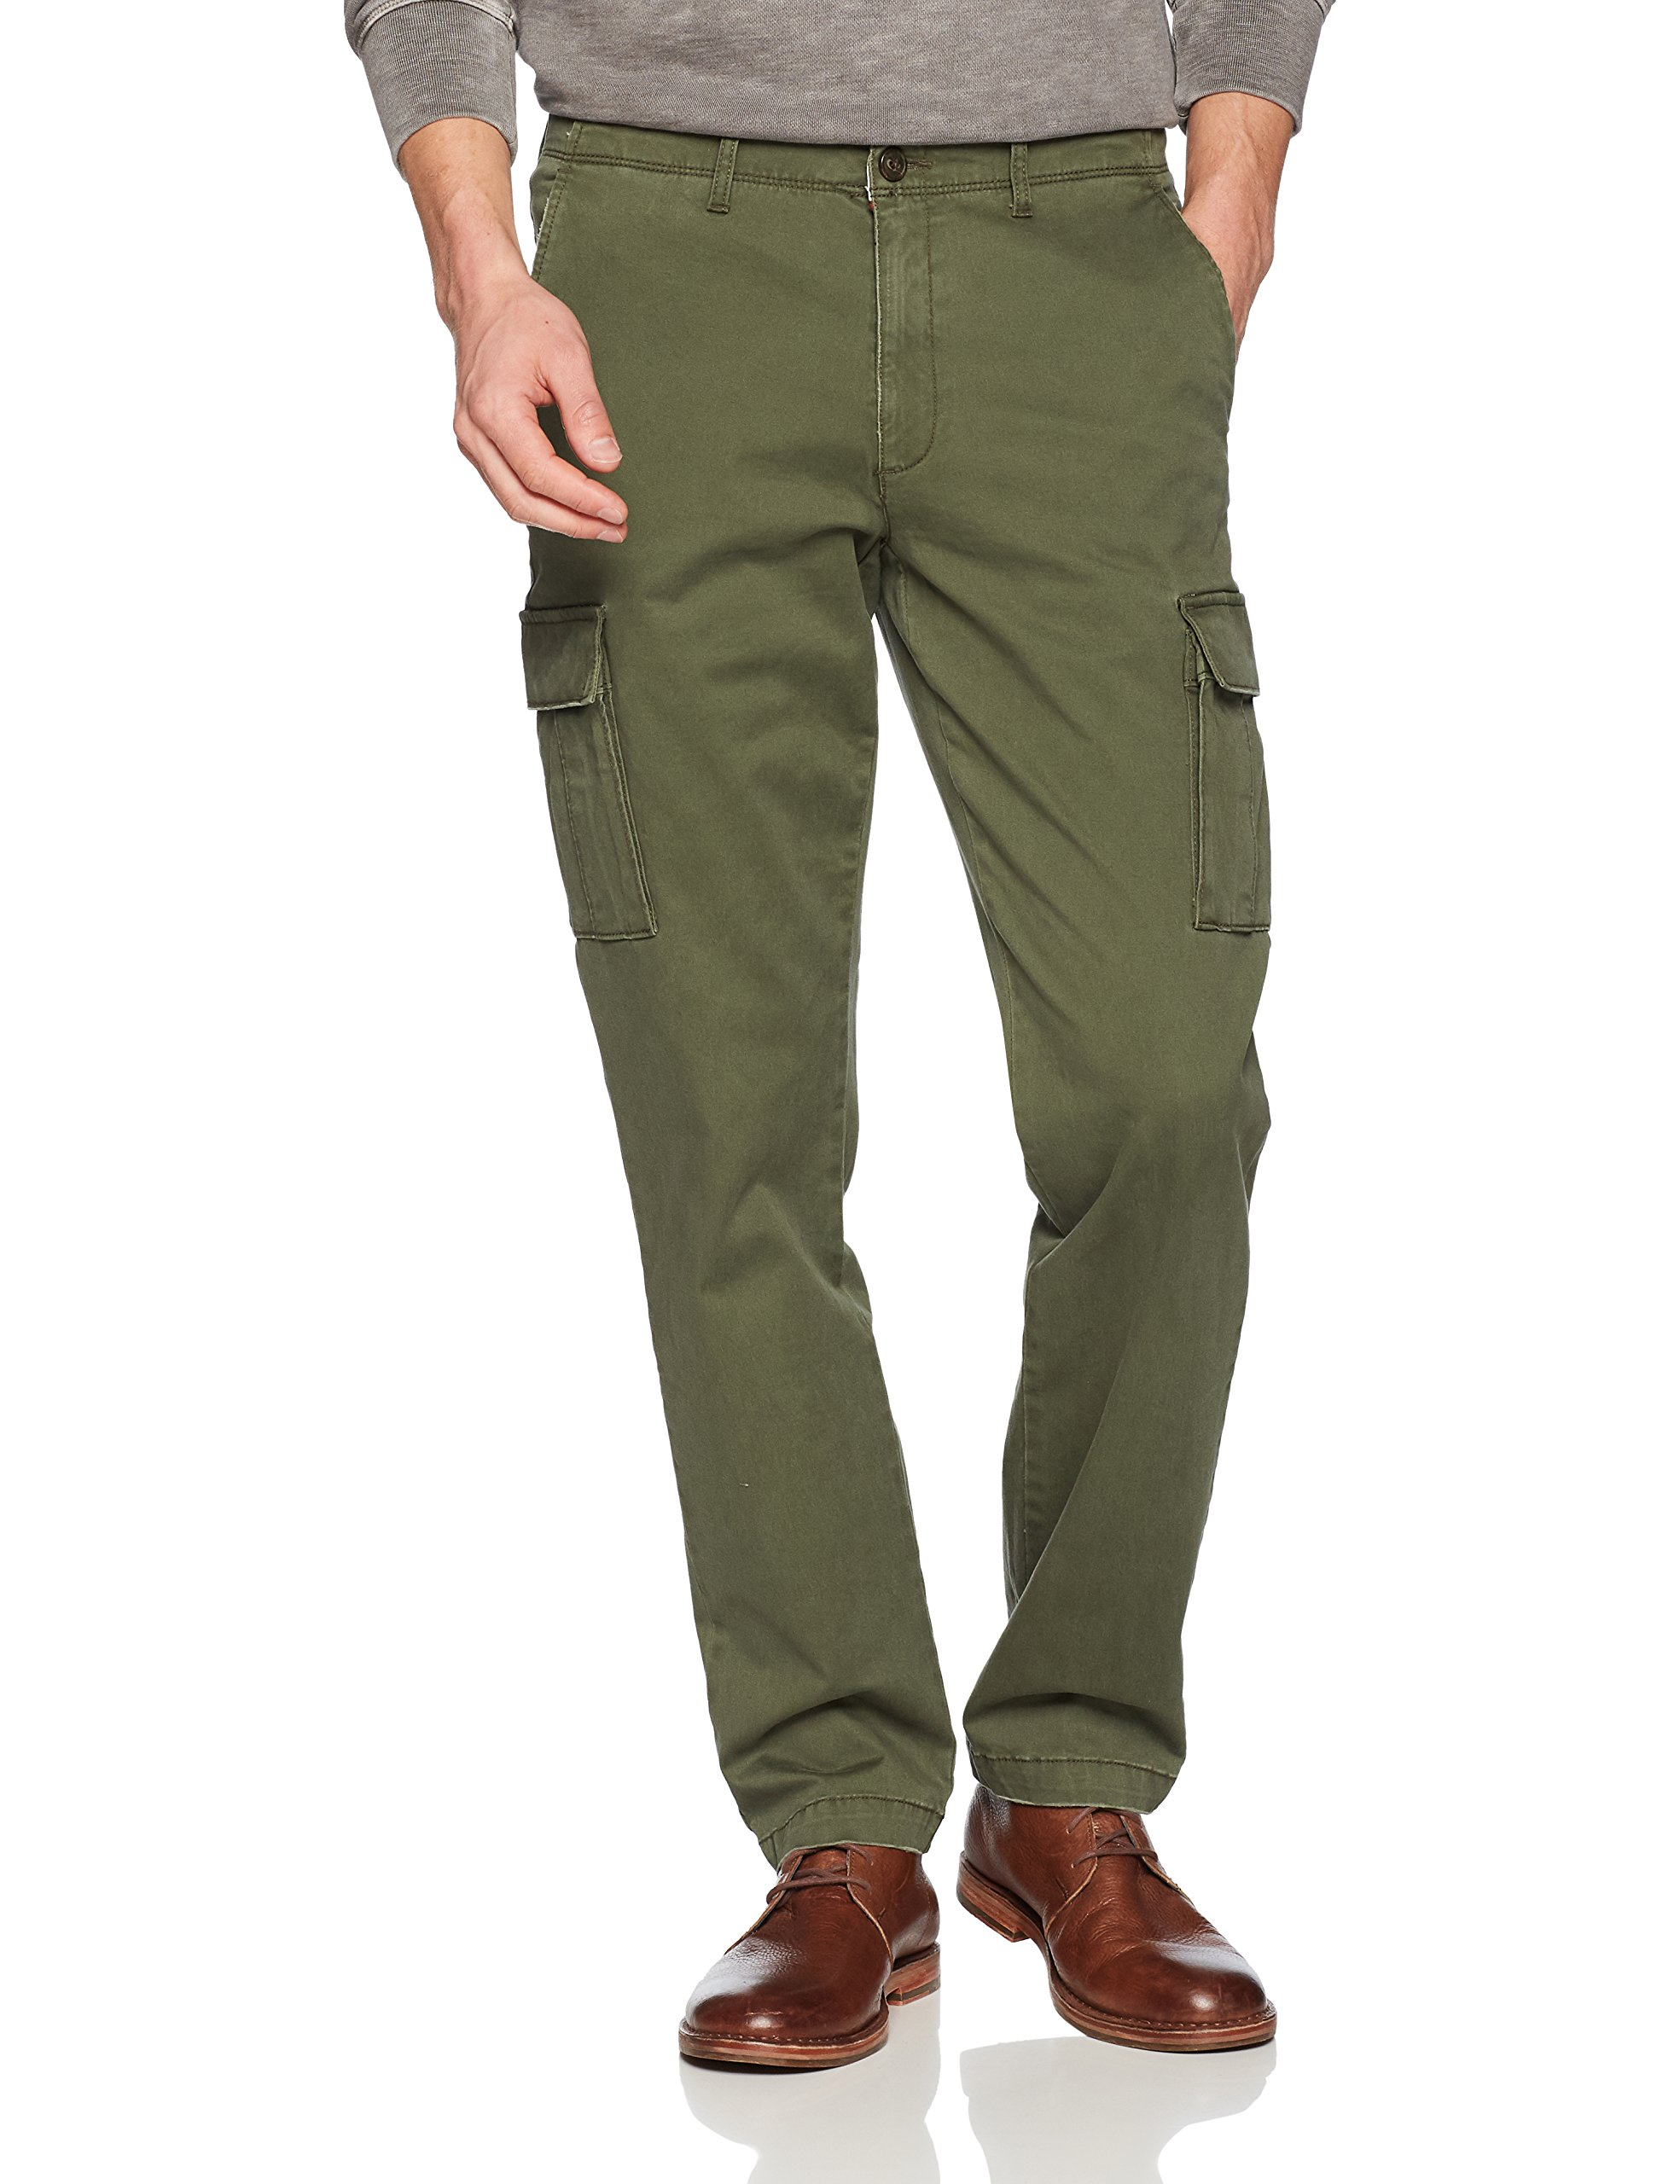 Goodthreads Men's Straight-Fit Vintage Cargo Pant, Deep Depth/Olive, 29W x 30L